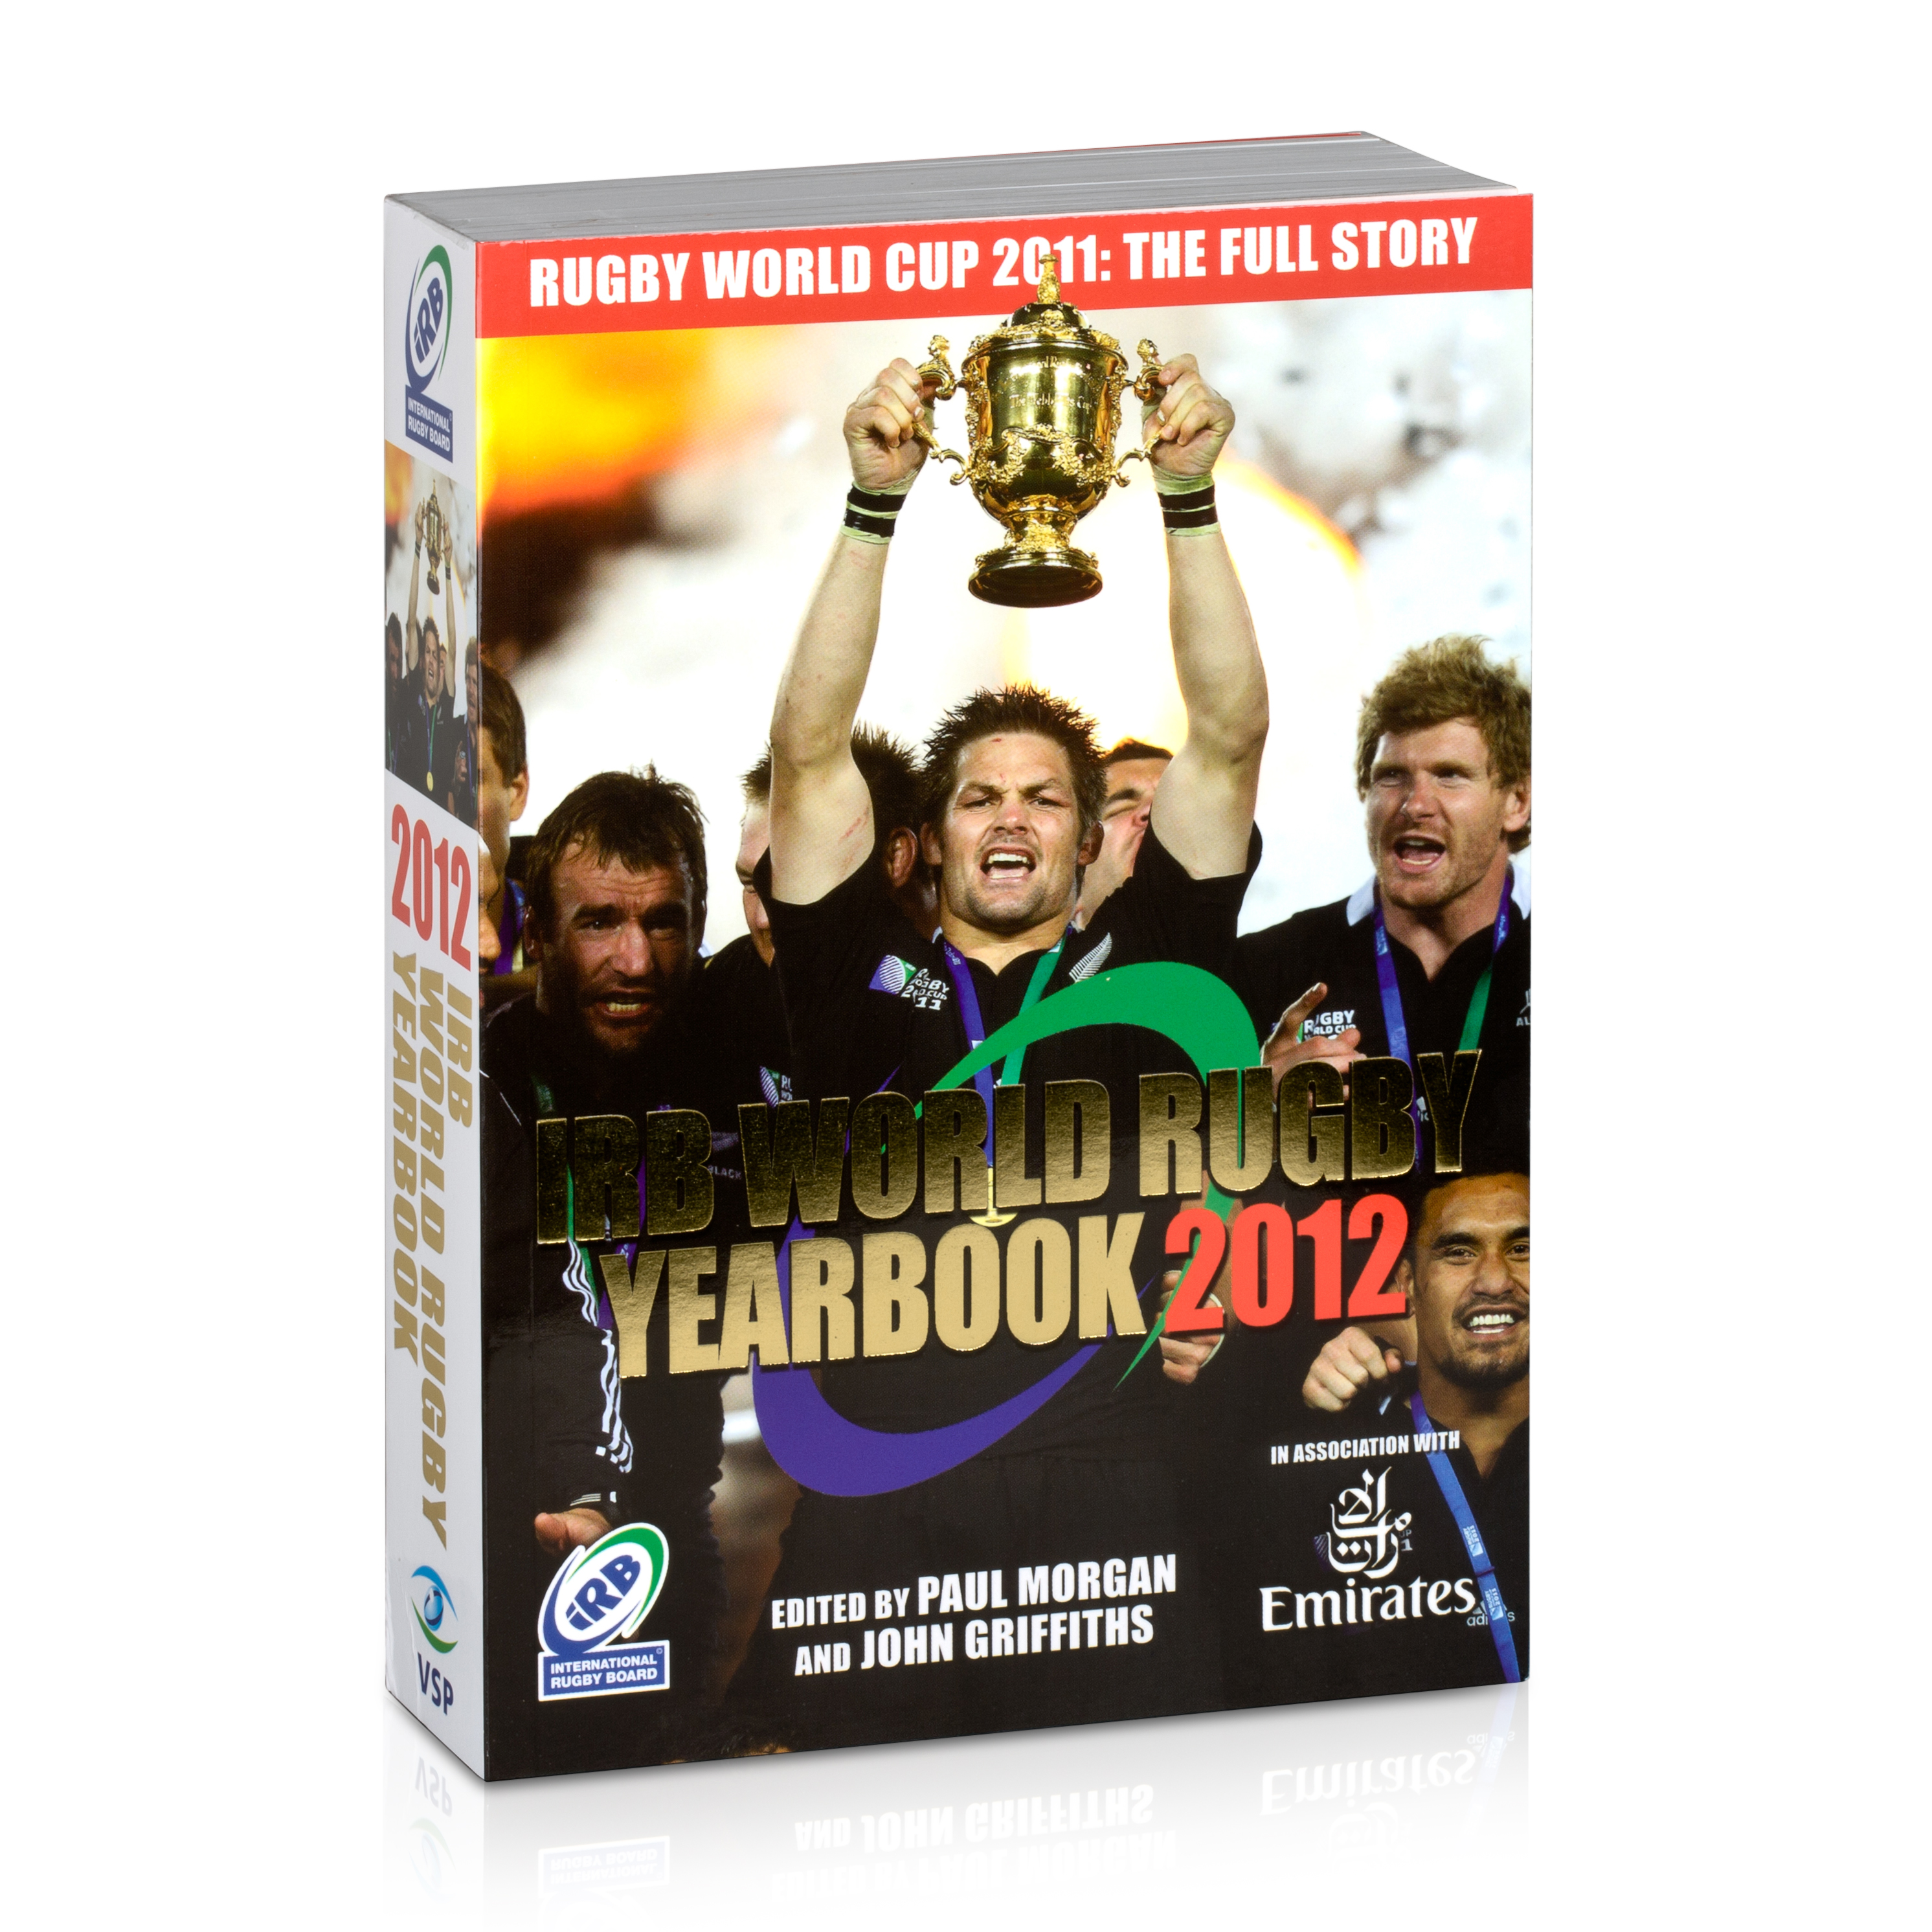 IRB World Rugby Yearbook 2012 - Rugby World Cup 2011 Edition